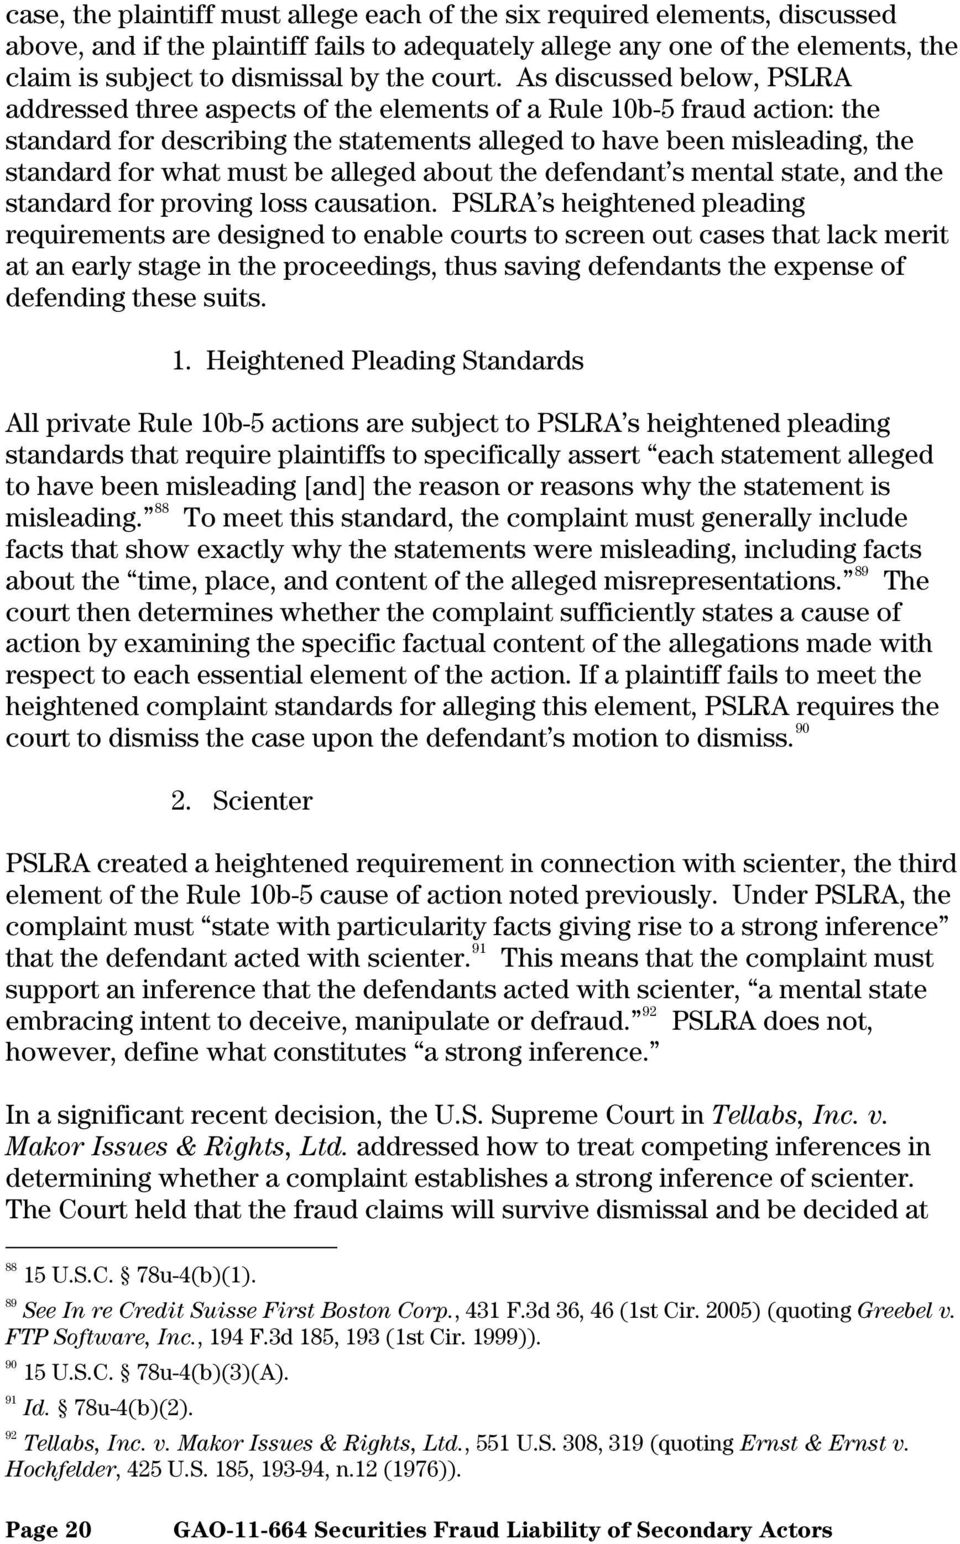 As discussed below, PSLRA addressed three aspects of the elements of a Rule 10b-5 fraud action: the standard for describing the statements alleged to have been misleading, the standard for what must